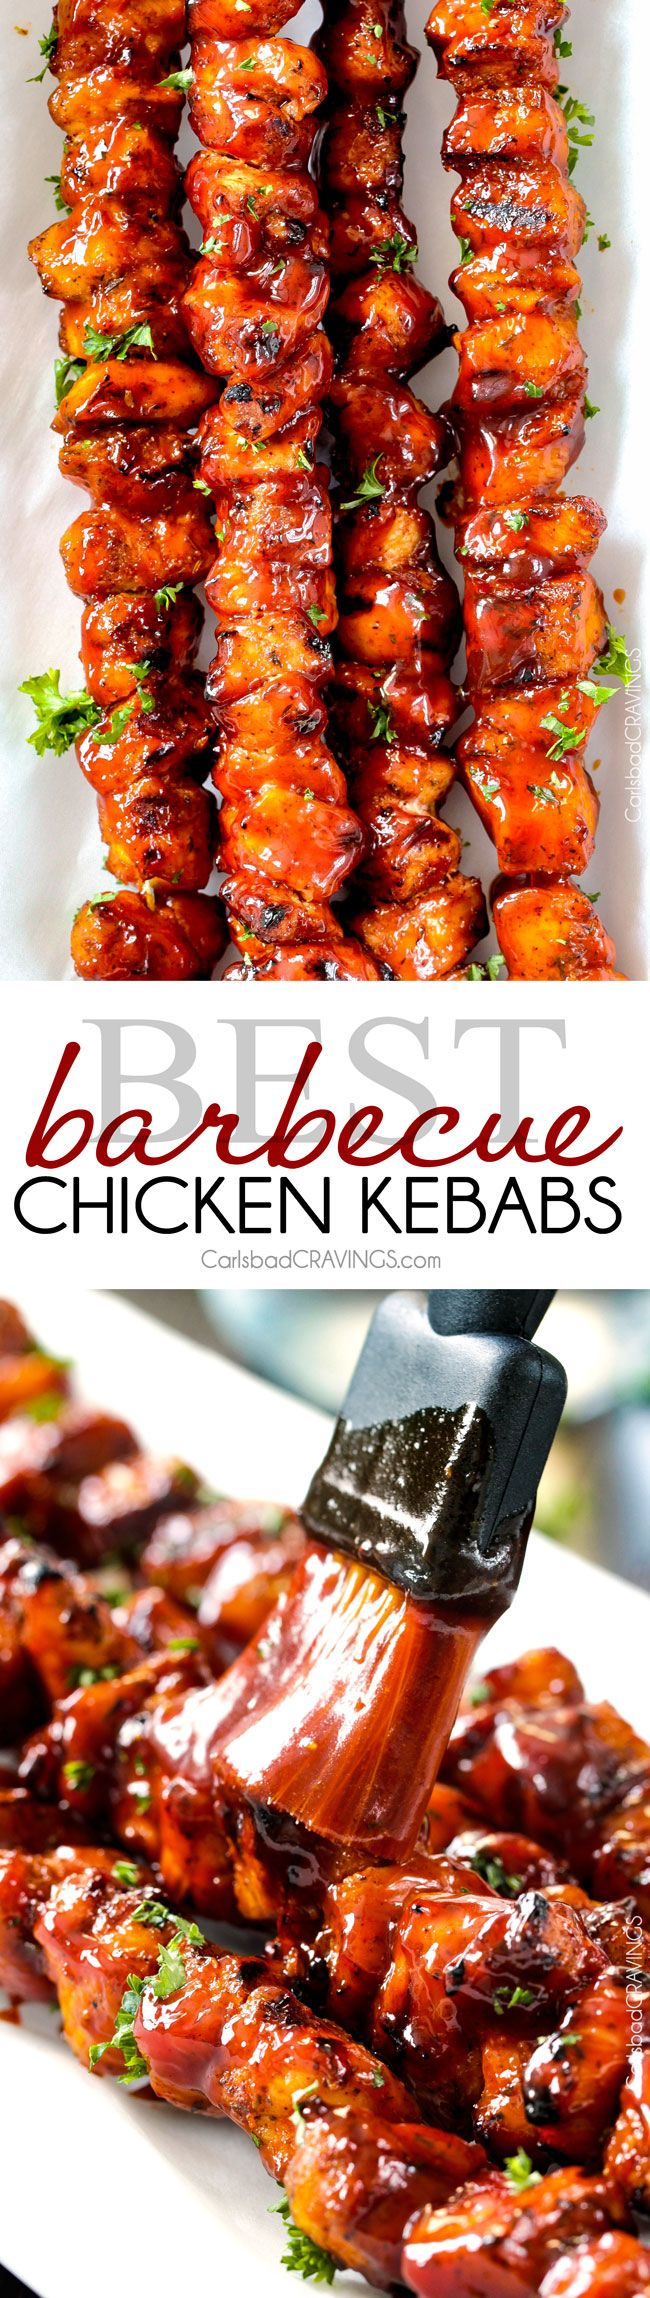 Slow Cooker: BBQ Chicken Kebabs - Carlsbad Cravings